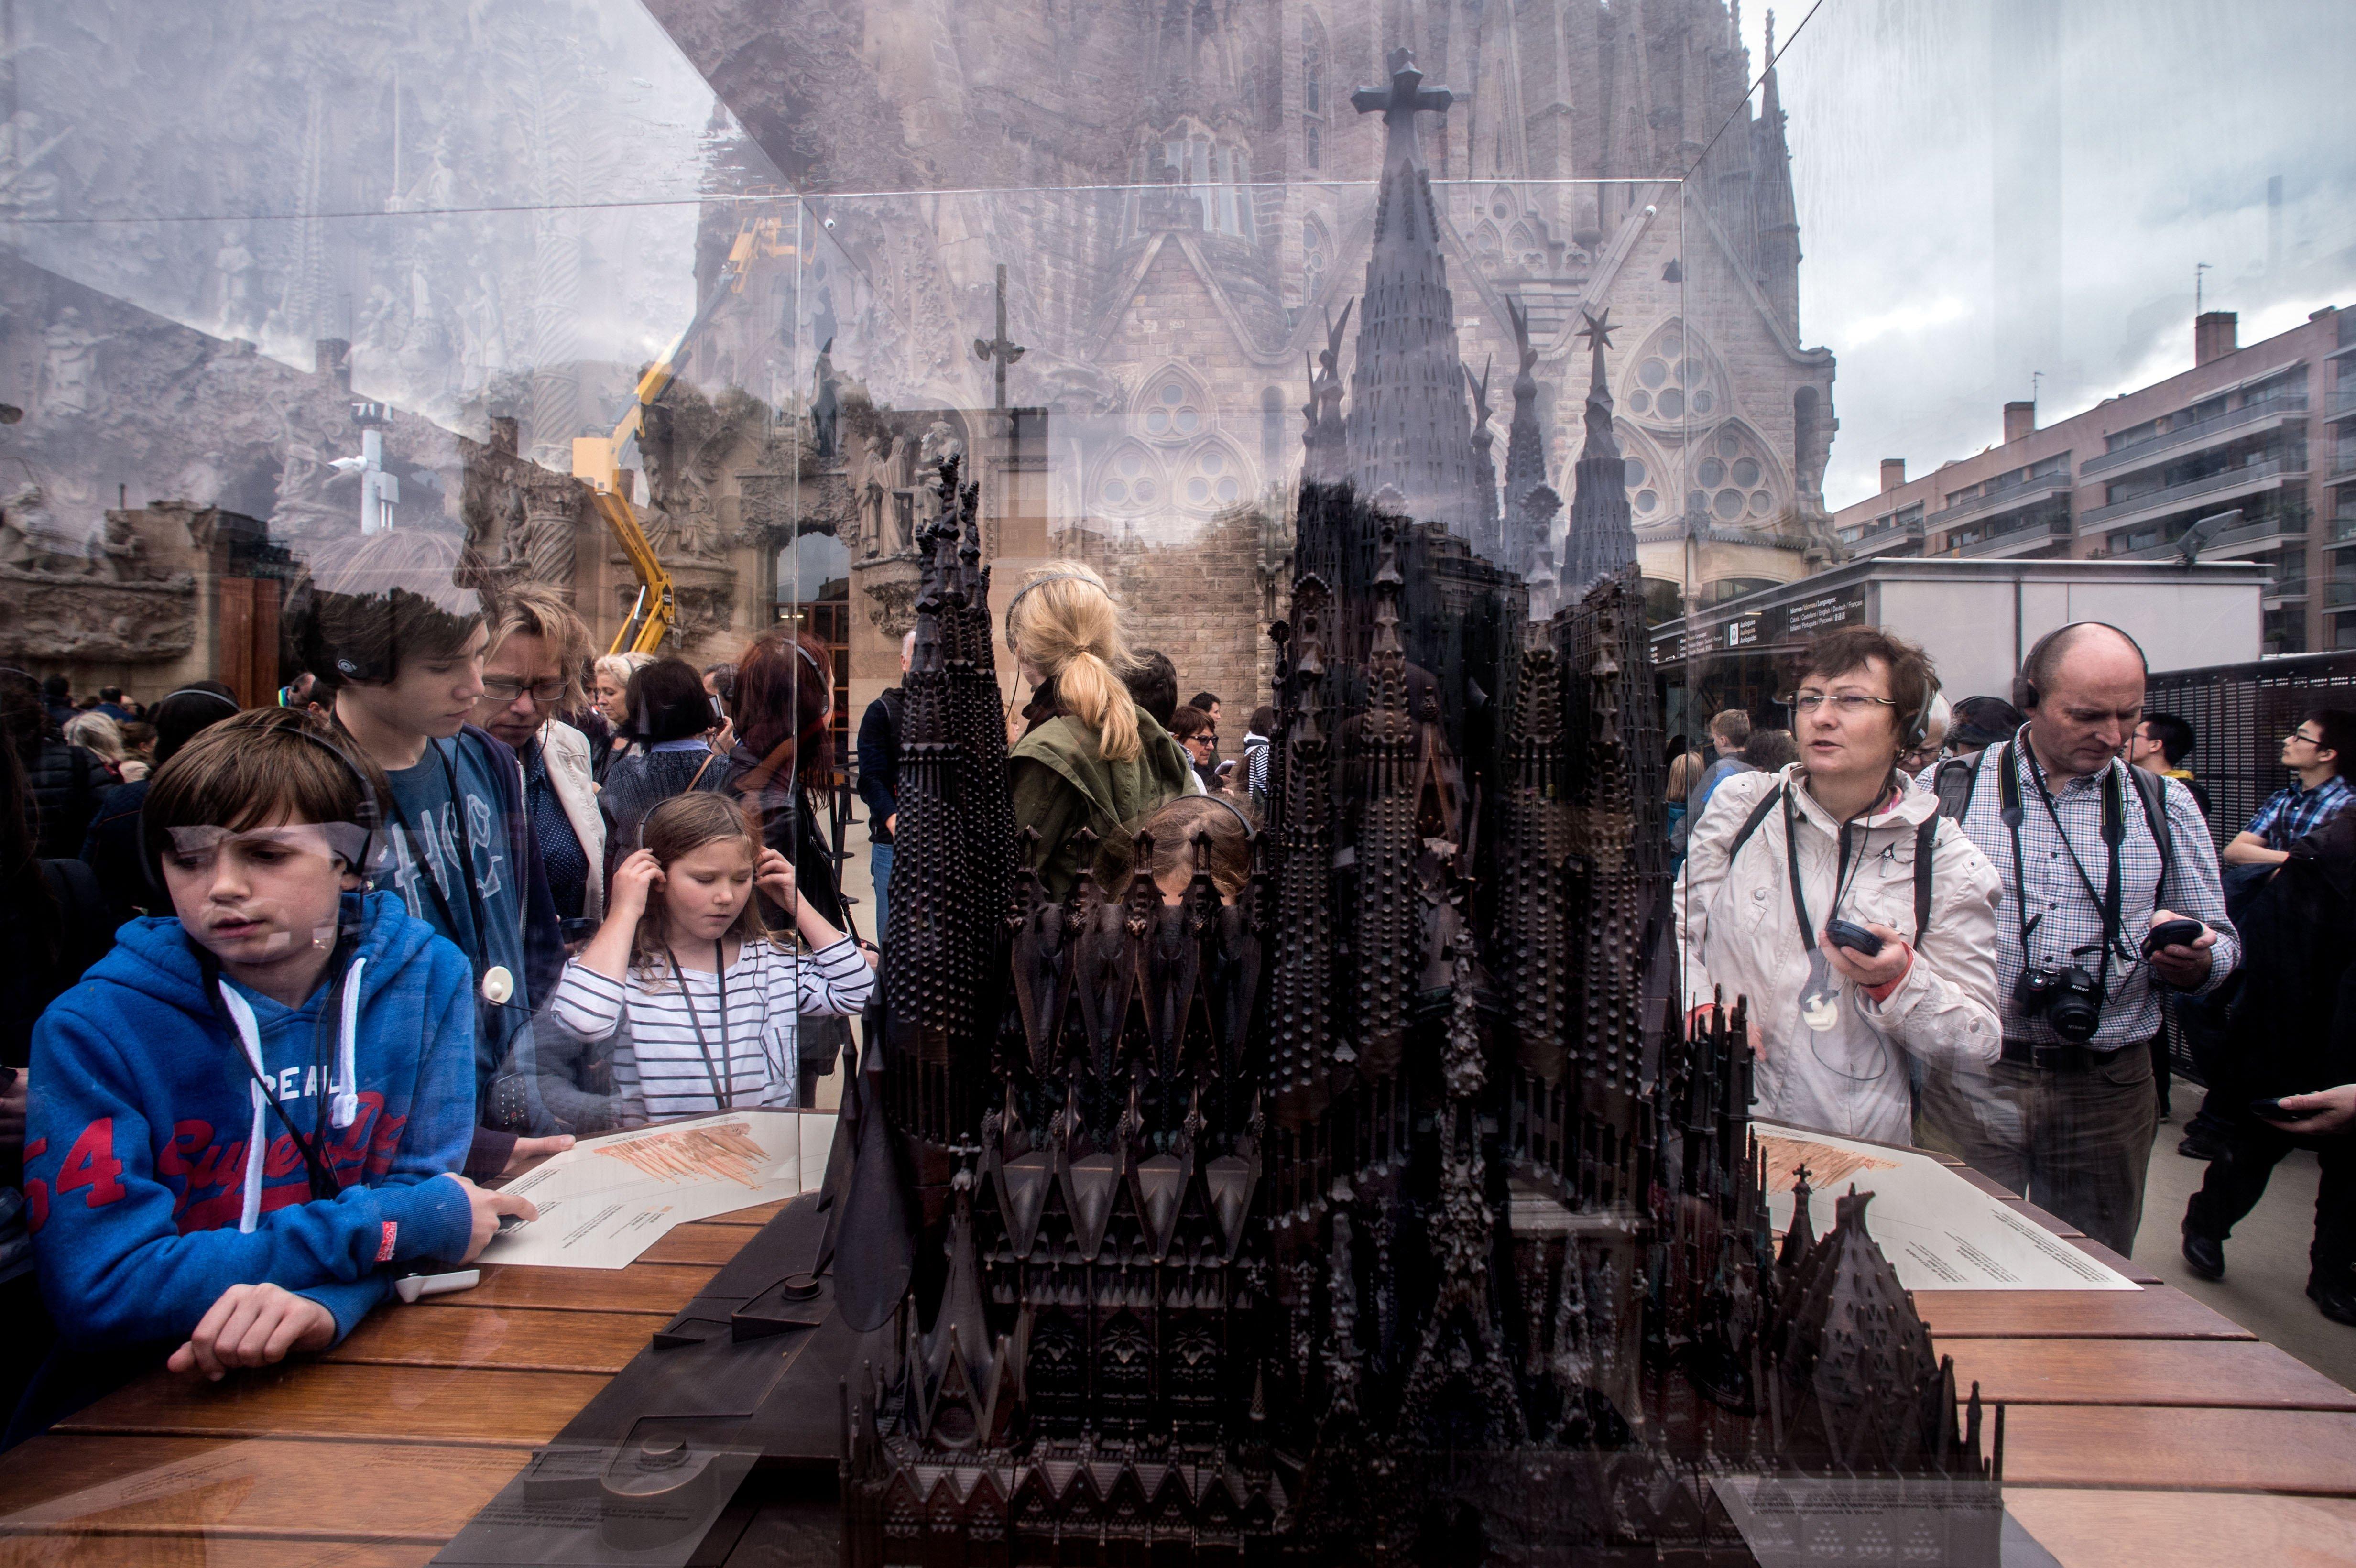 Tourists look at a mockup of 'La Sagrada Familia' as they visit the temple in Barcelona on Oct. 26, 2015.